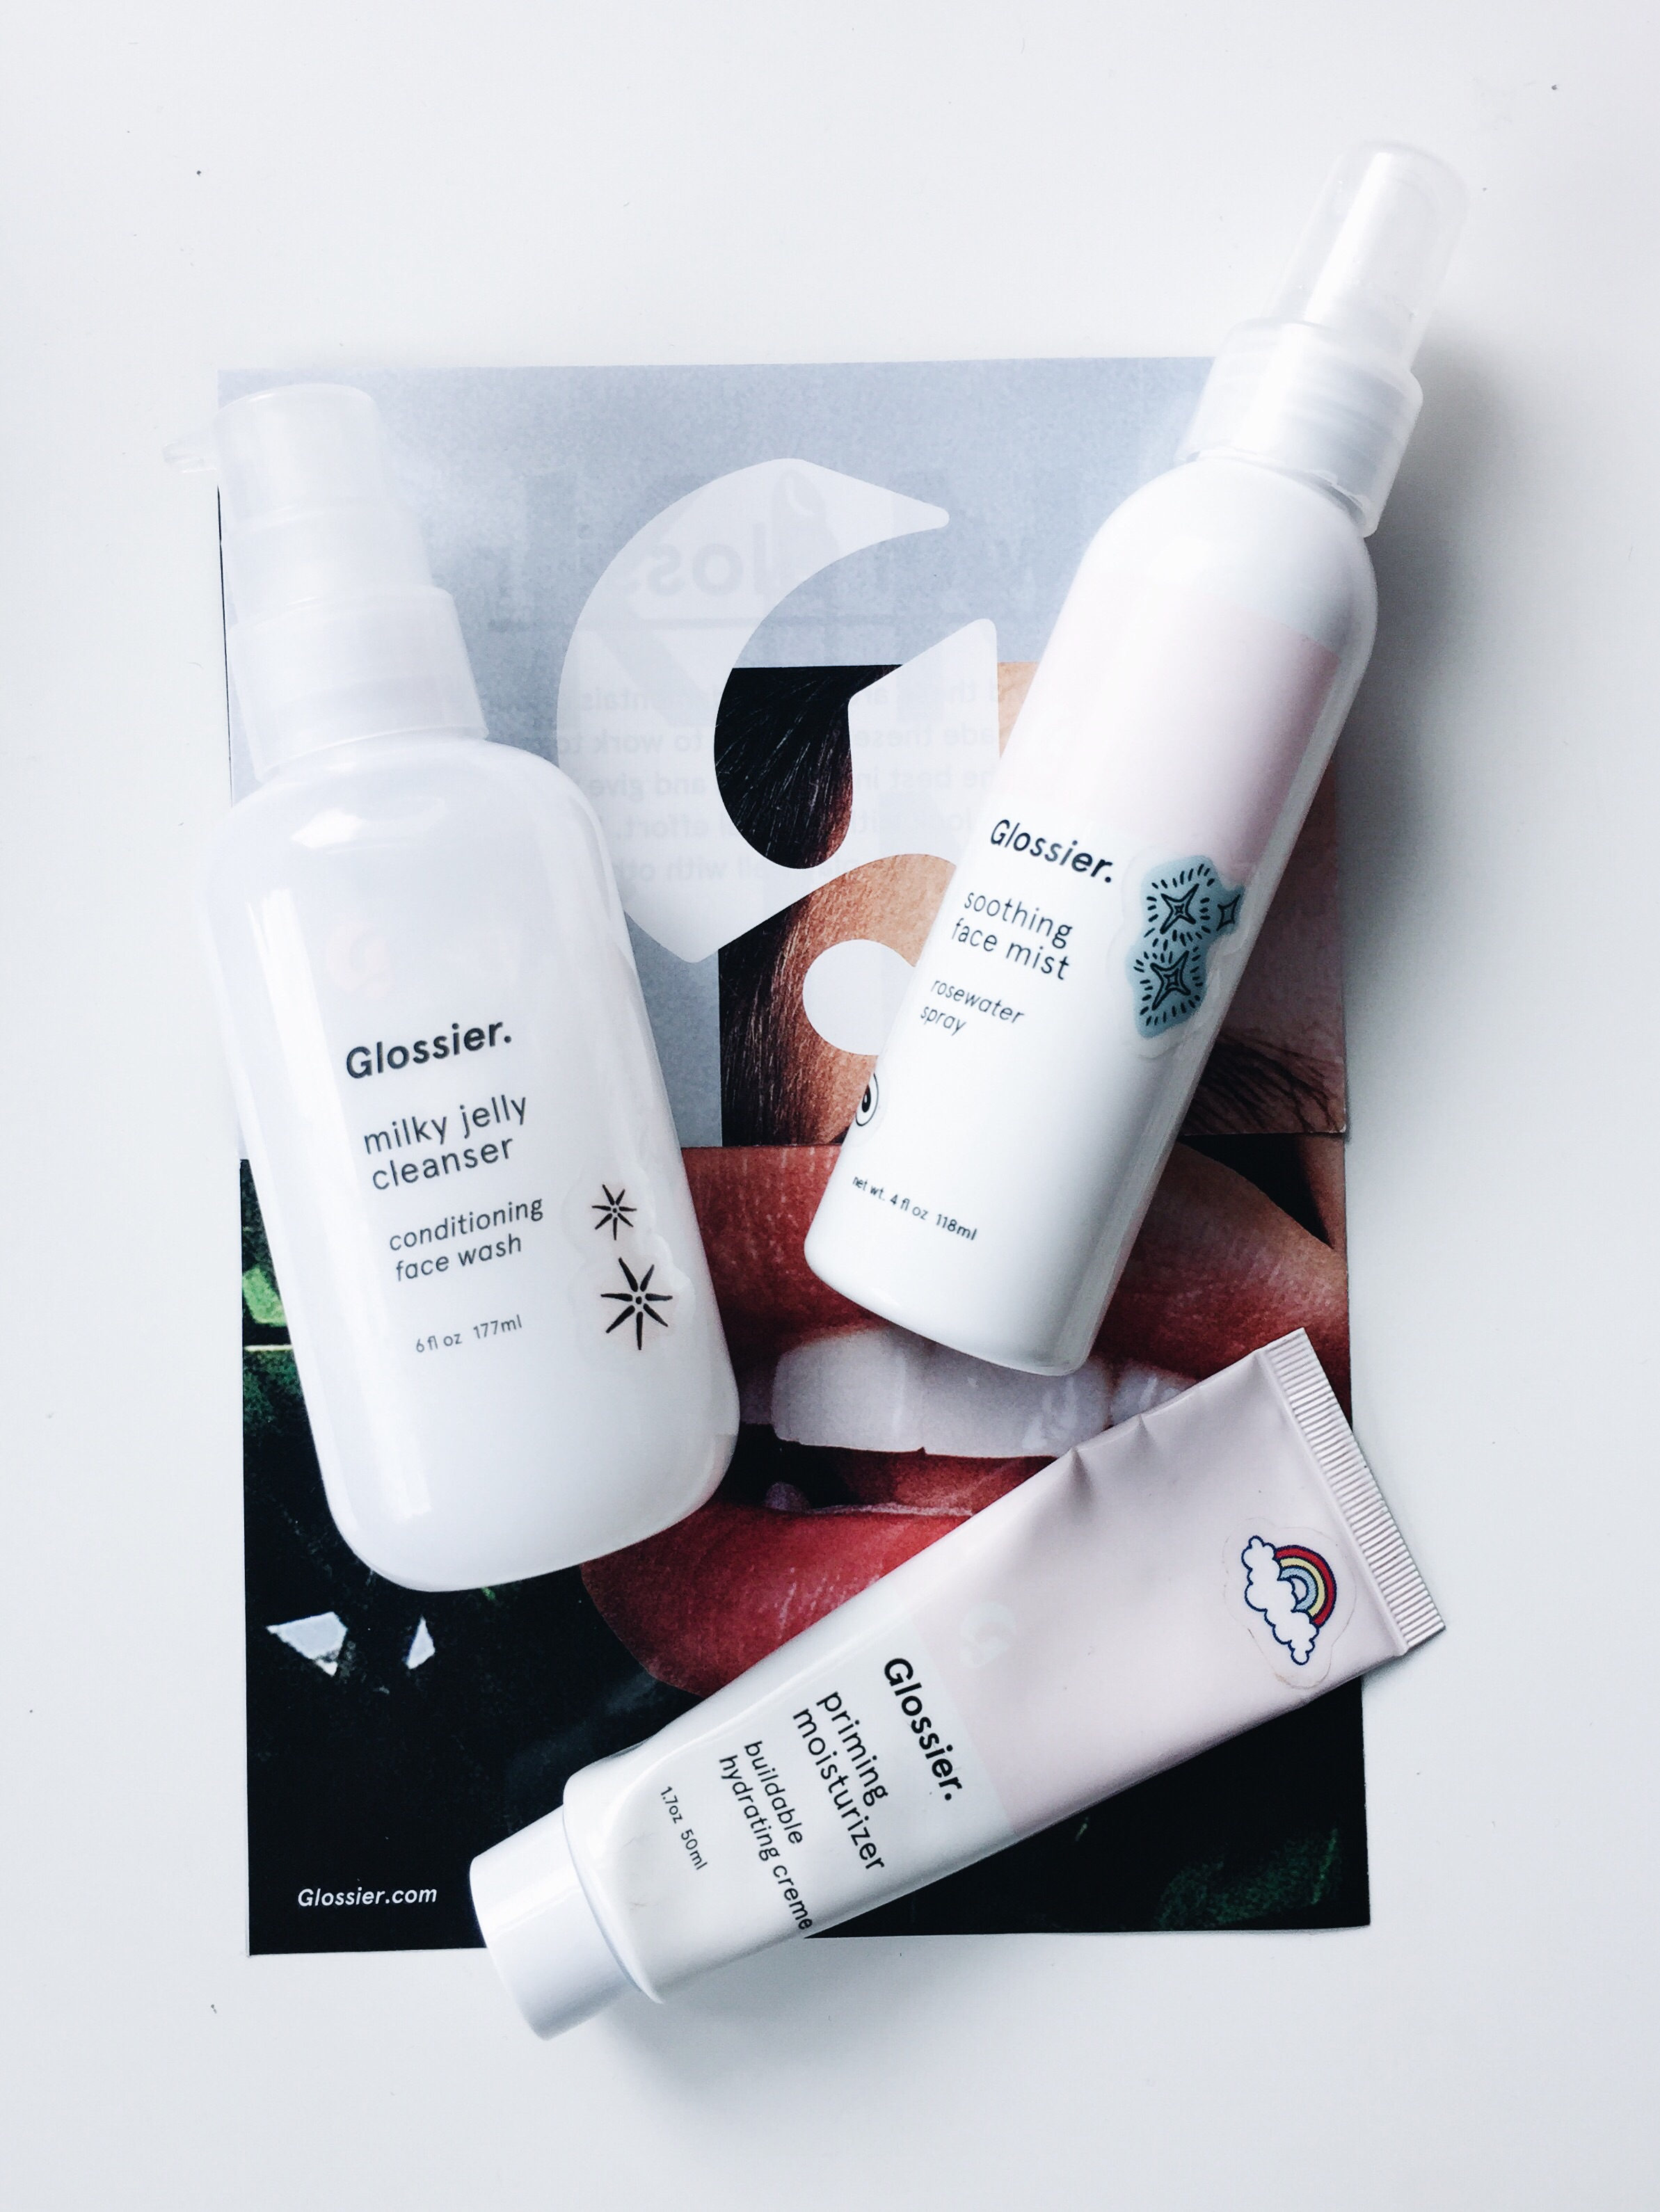 Glossier Milky Jelly Cleanser, Priming Moisturizer, Soothing Face Spray